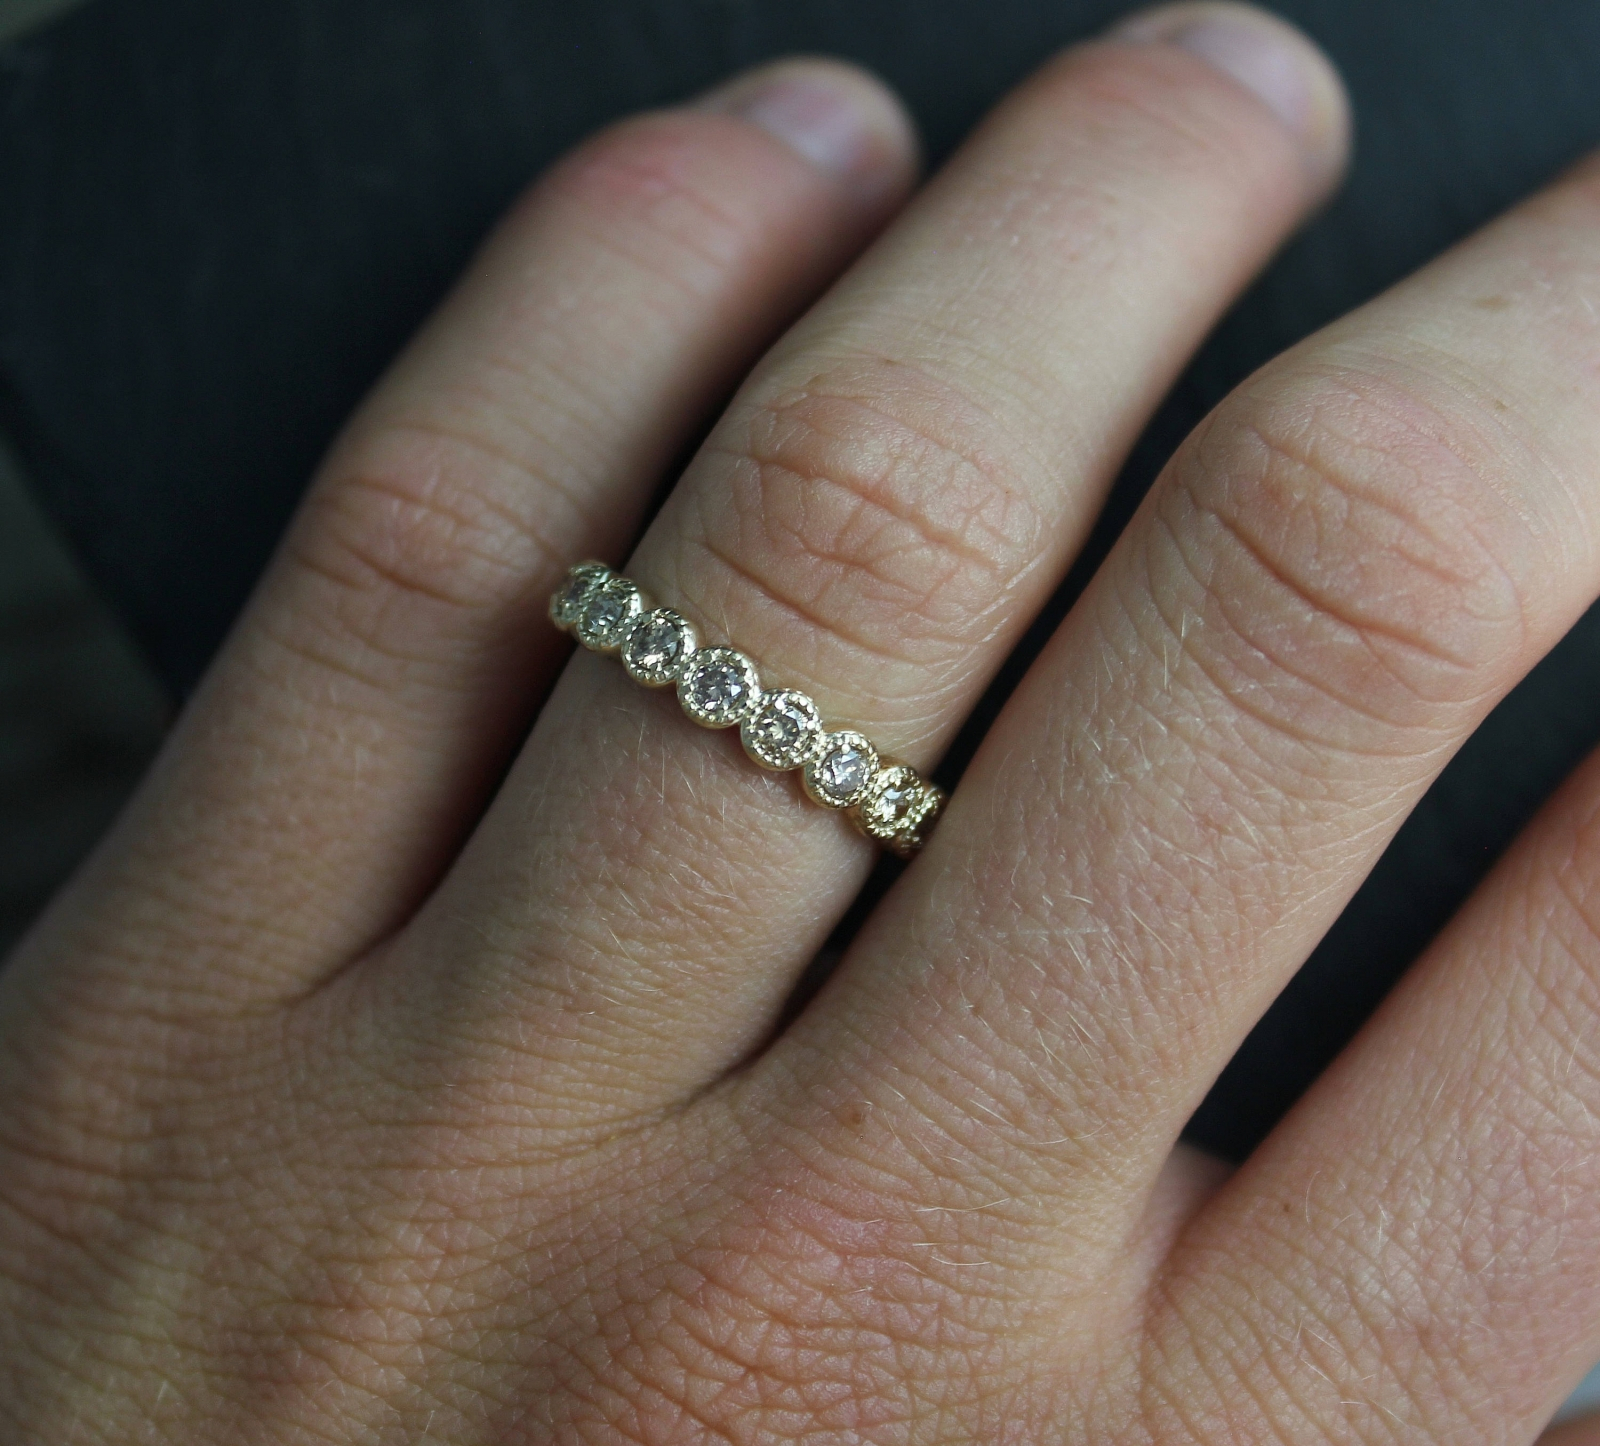 Champagne Diamond In 14K Yellow Gold, Ten Stone Band, Vintage Milgrain  Texture, Anniversary Band, Wedding Band, Ready To Ship Size  (View 13 of 25)